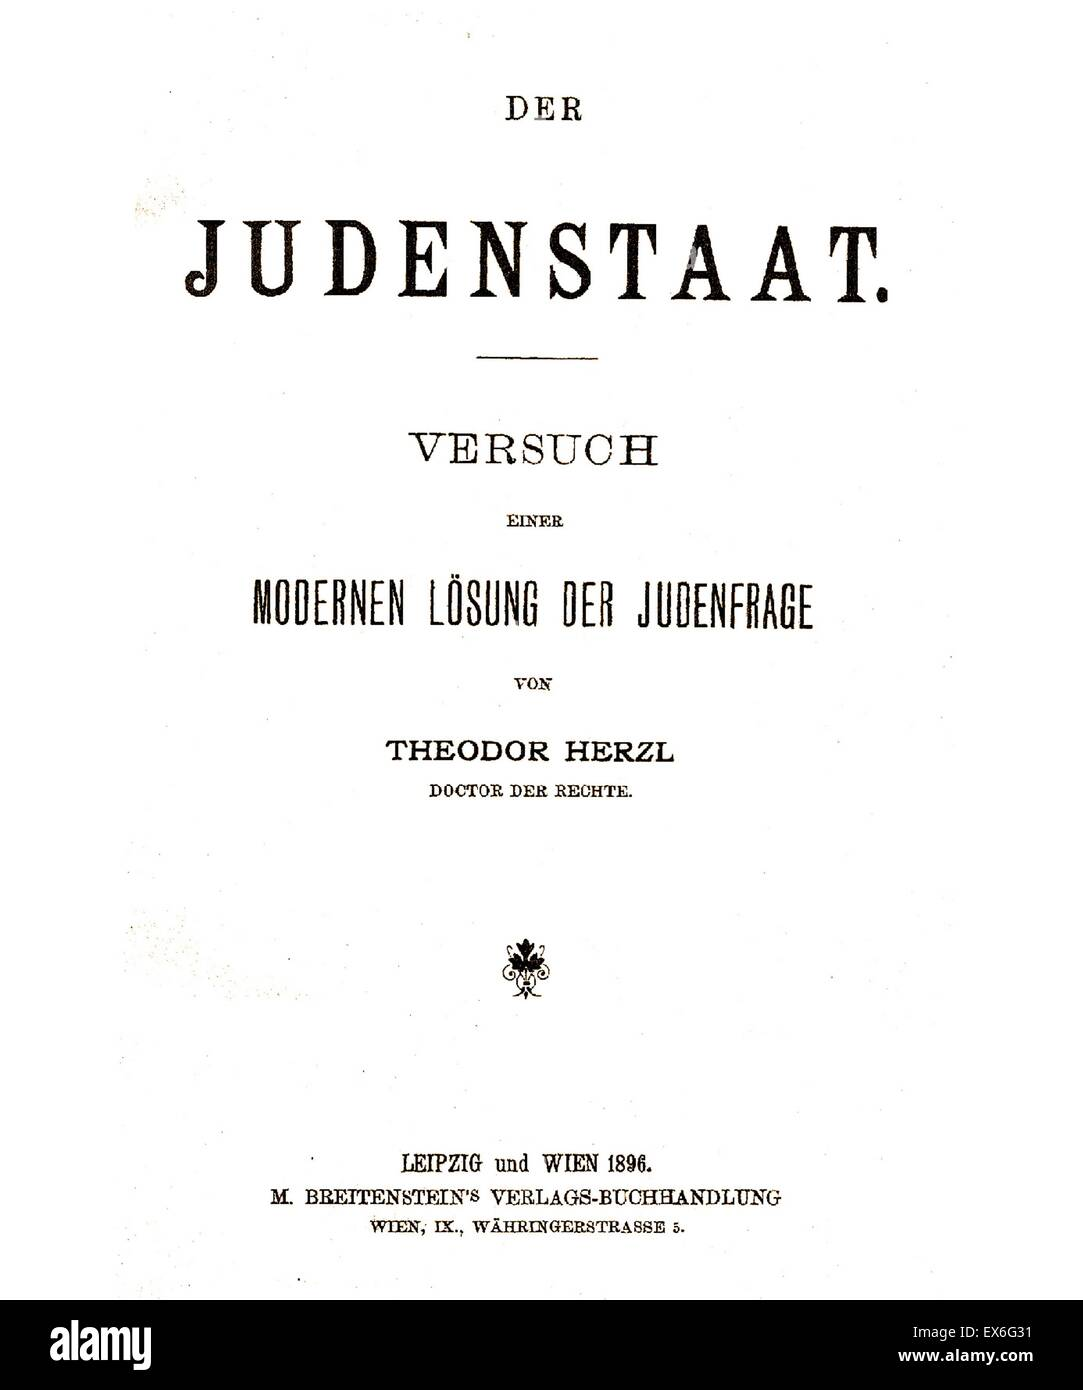 Der Judenstaat is a pamphlet written by Theodor Herzl and published in February 1896. It advocated the creation - Stock Image